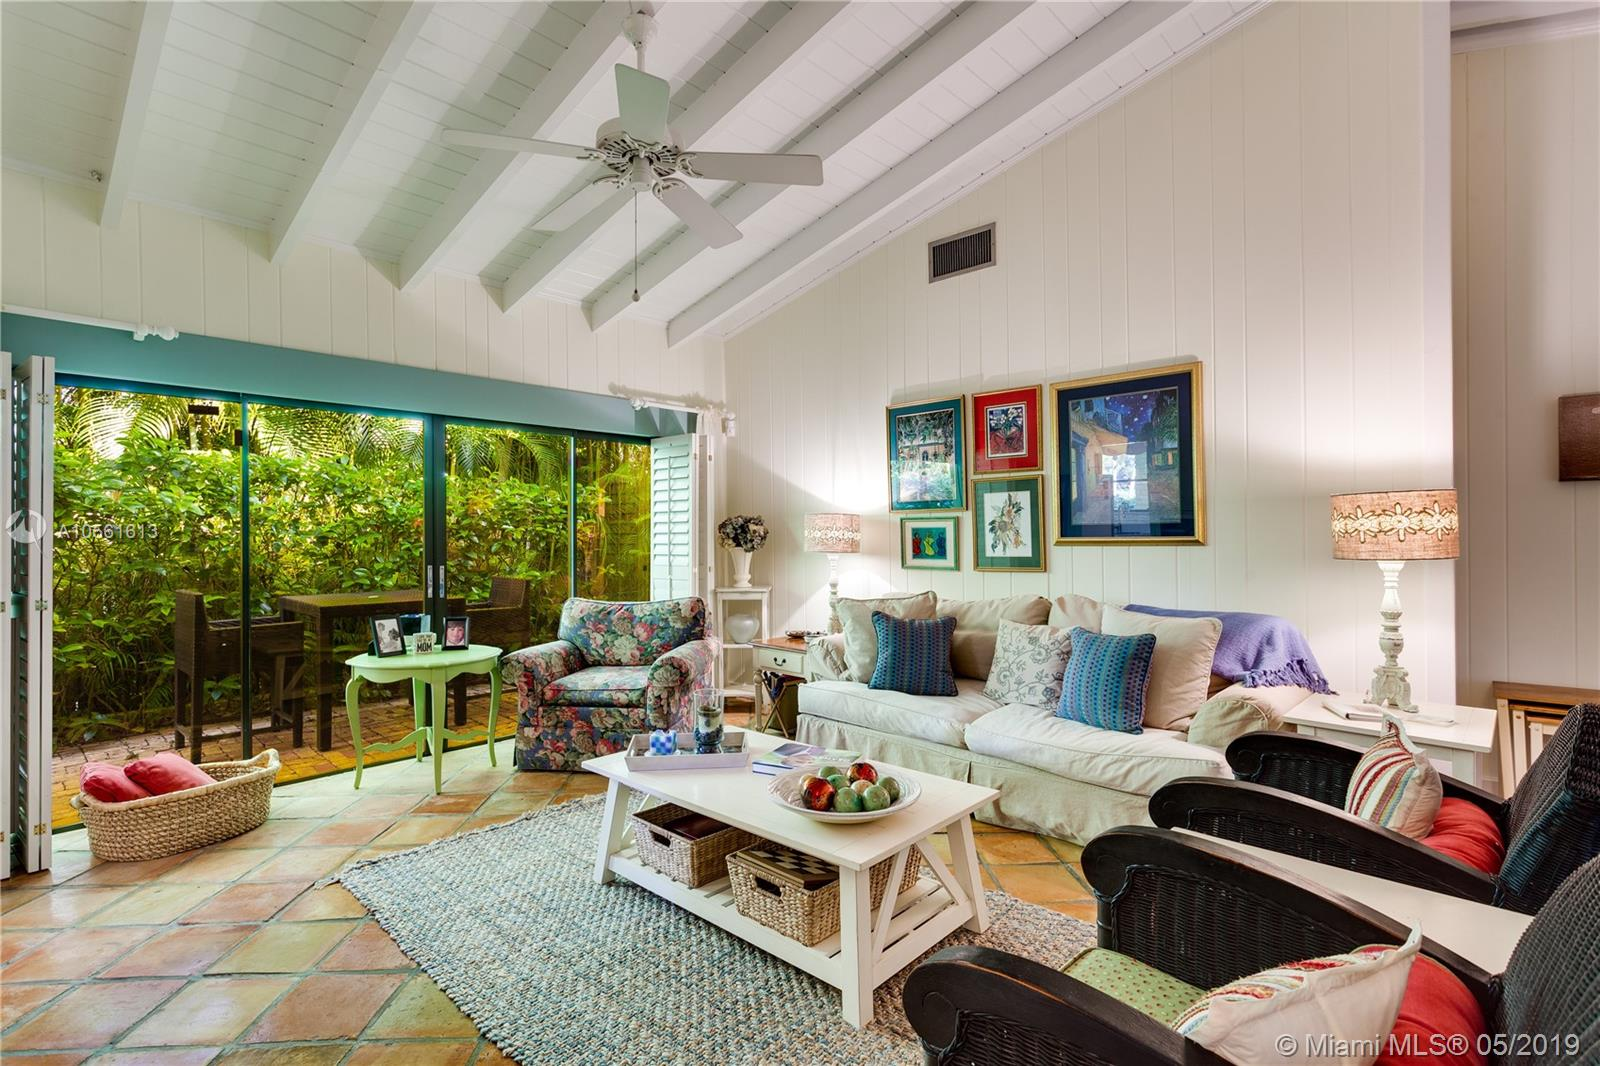 Top Location Within Walking Distance To The Coral Gables Library & Youth Center For This Charming 1950'S 2 Bedroom 2 And 1/2 Bath Home Which Has A Den Which Could Easily Be A Third Bedroom. Dramatic High Open Beamed Ceilings In Large Foyer And In Living And Dining Areas - Great Room Effect With Large Expanse Of Sliding Glass Doors On Both Sides Of The Room For Terrific Cross Ventilation Effect. 2068 Actual Square Footage. 5, 250 Sq Ft Lot With Charming Courtyard Style Garden At The Front Entry. House Sits At Back Of Its Lot And So There Is No Room For A Backyard Pool. Updated, White Kitchen, Oak Floors In Master Bedroom And Second Bedroom. Garage. Close To Riviera Country Club, Merrick Park And The University Of Miami.